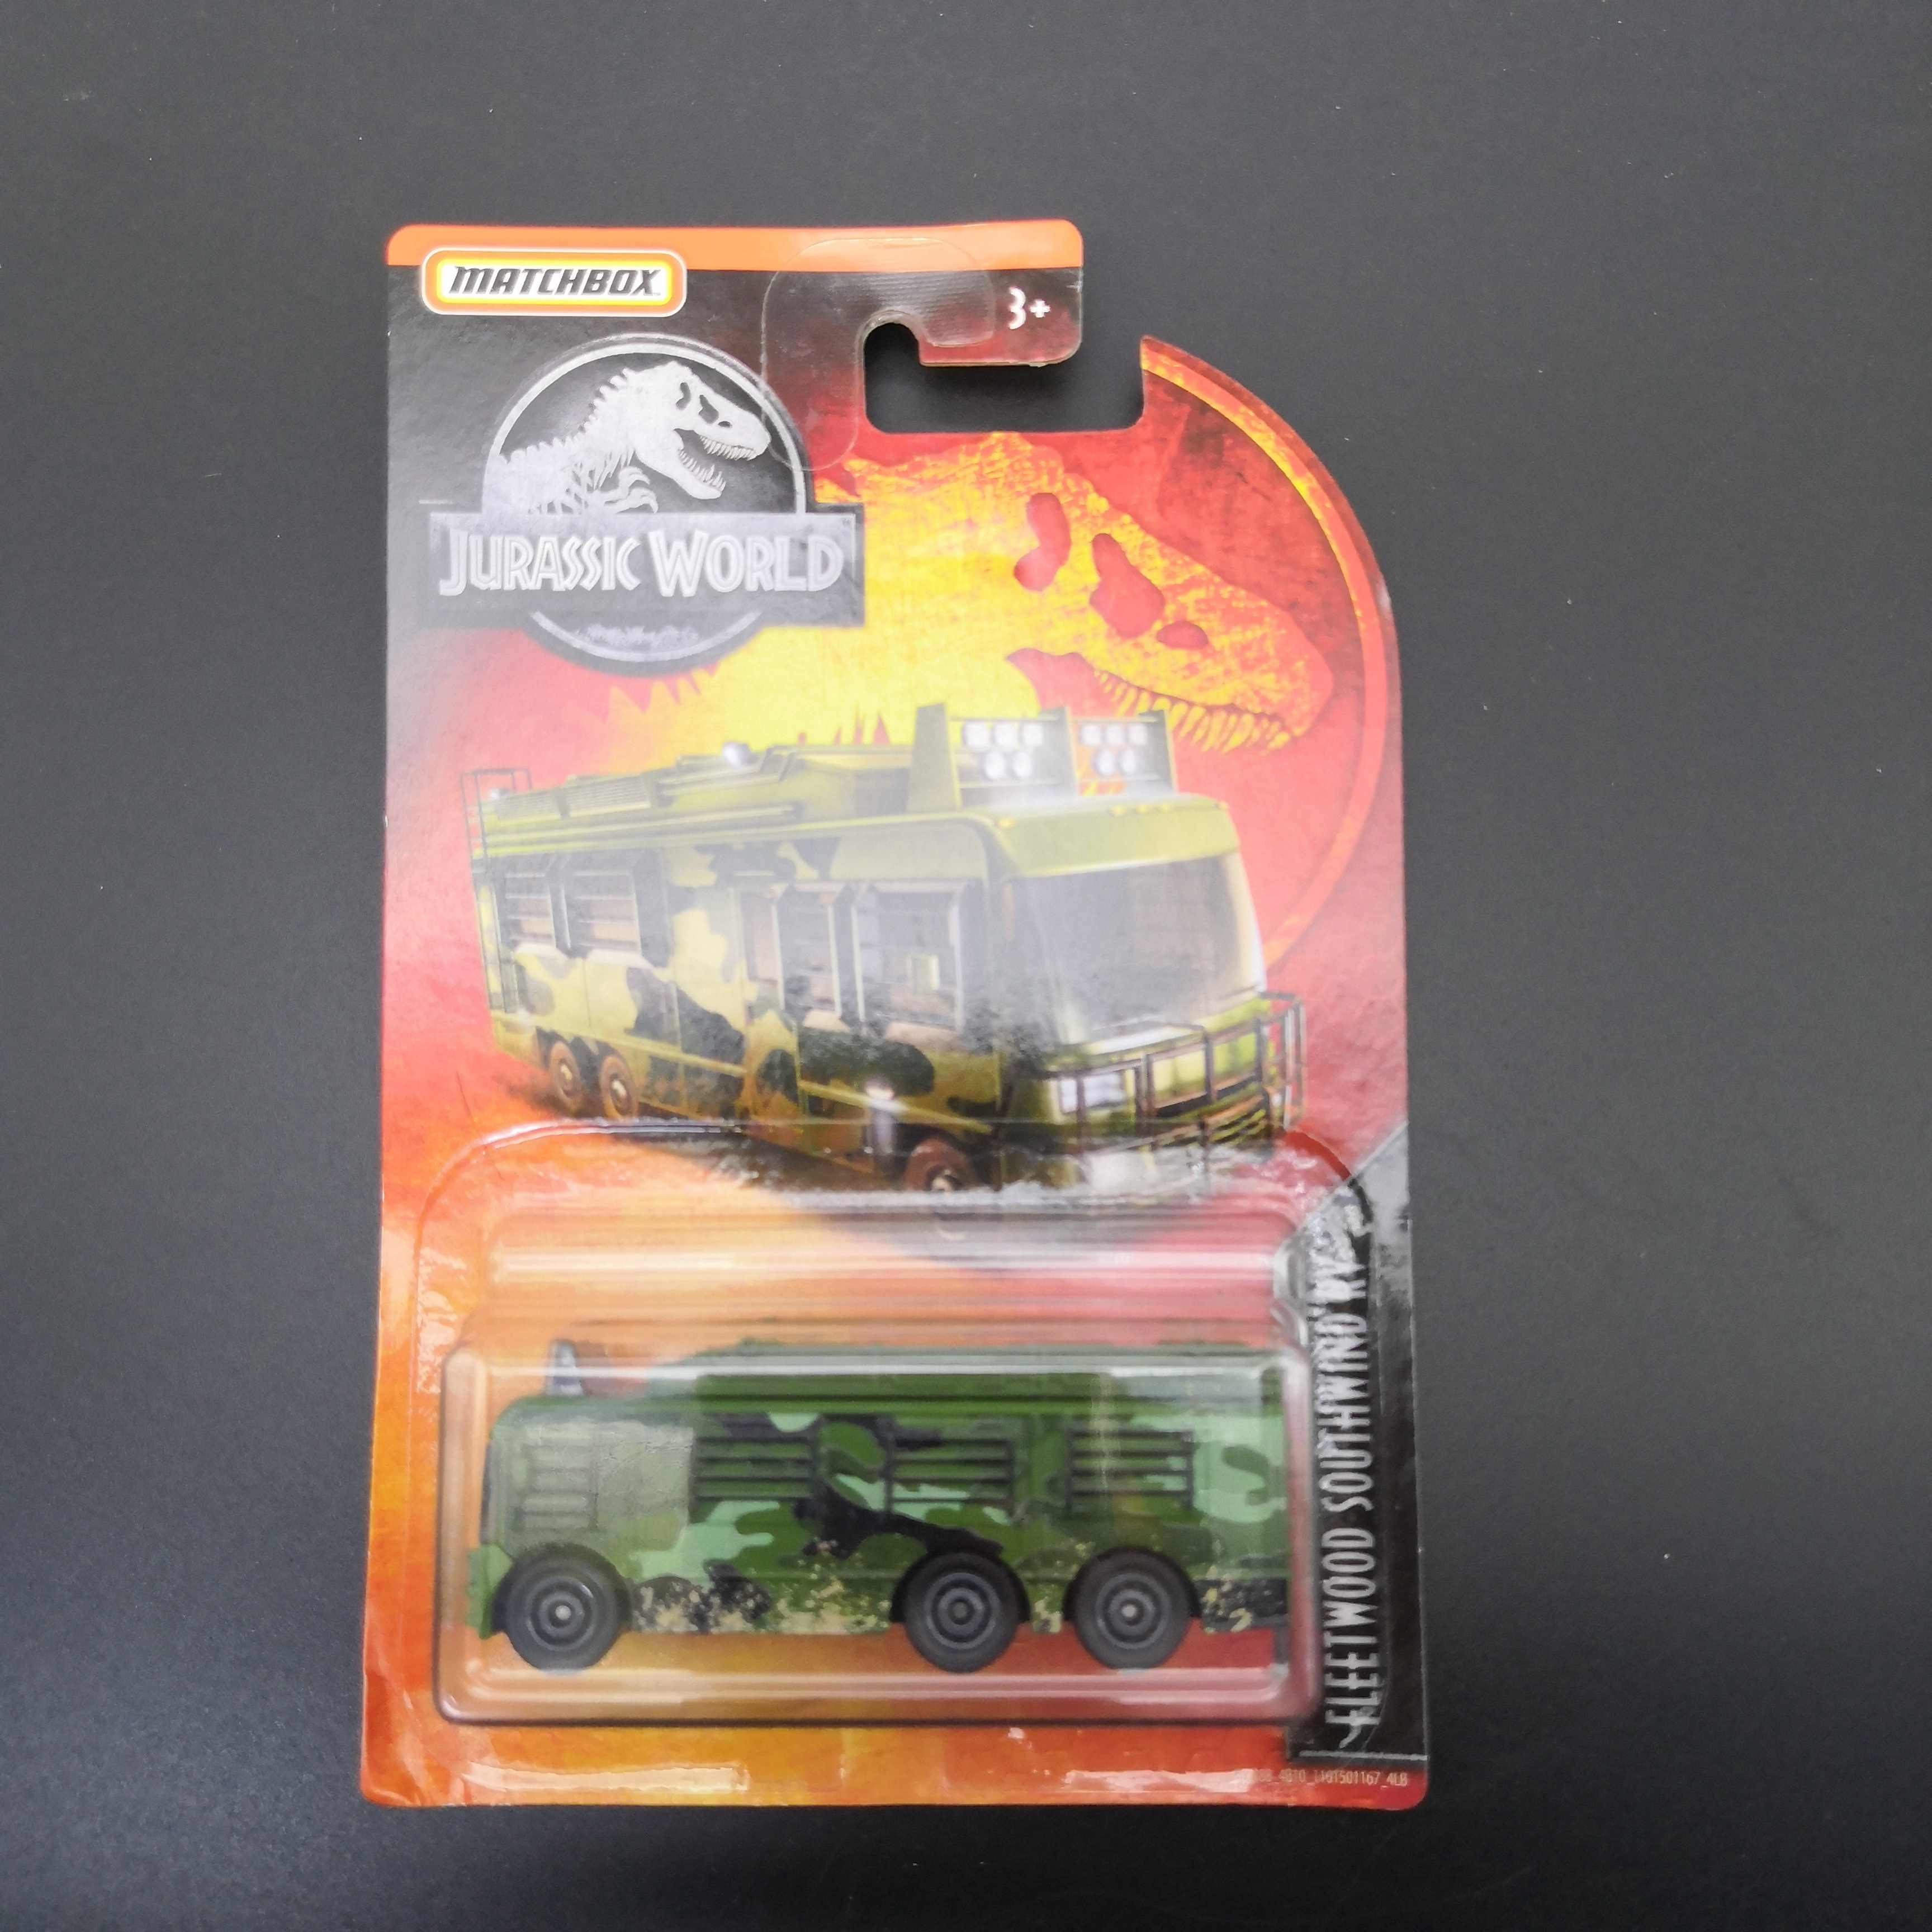 2019 Matchbox Car 1:64 Sports Car JURASSIC WORLD FLEETWOOD SOUTHWIND RV  Metal Material Body Race Car Collection Alloy Car Gift